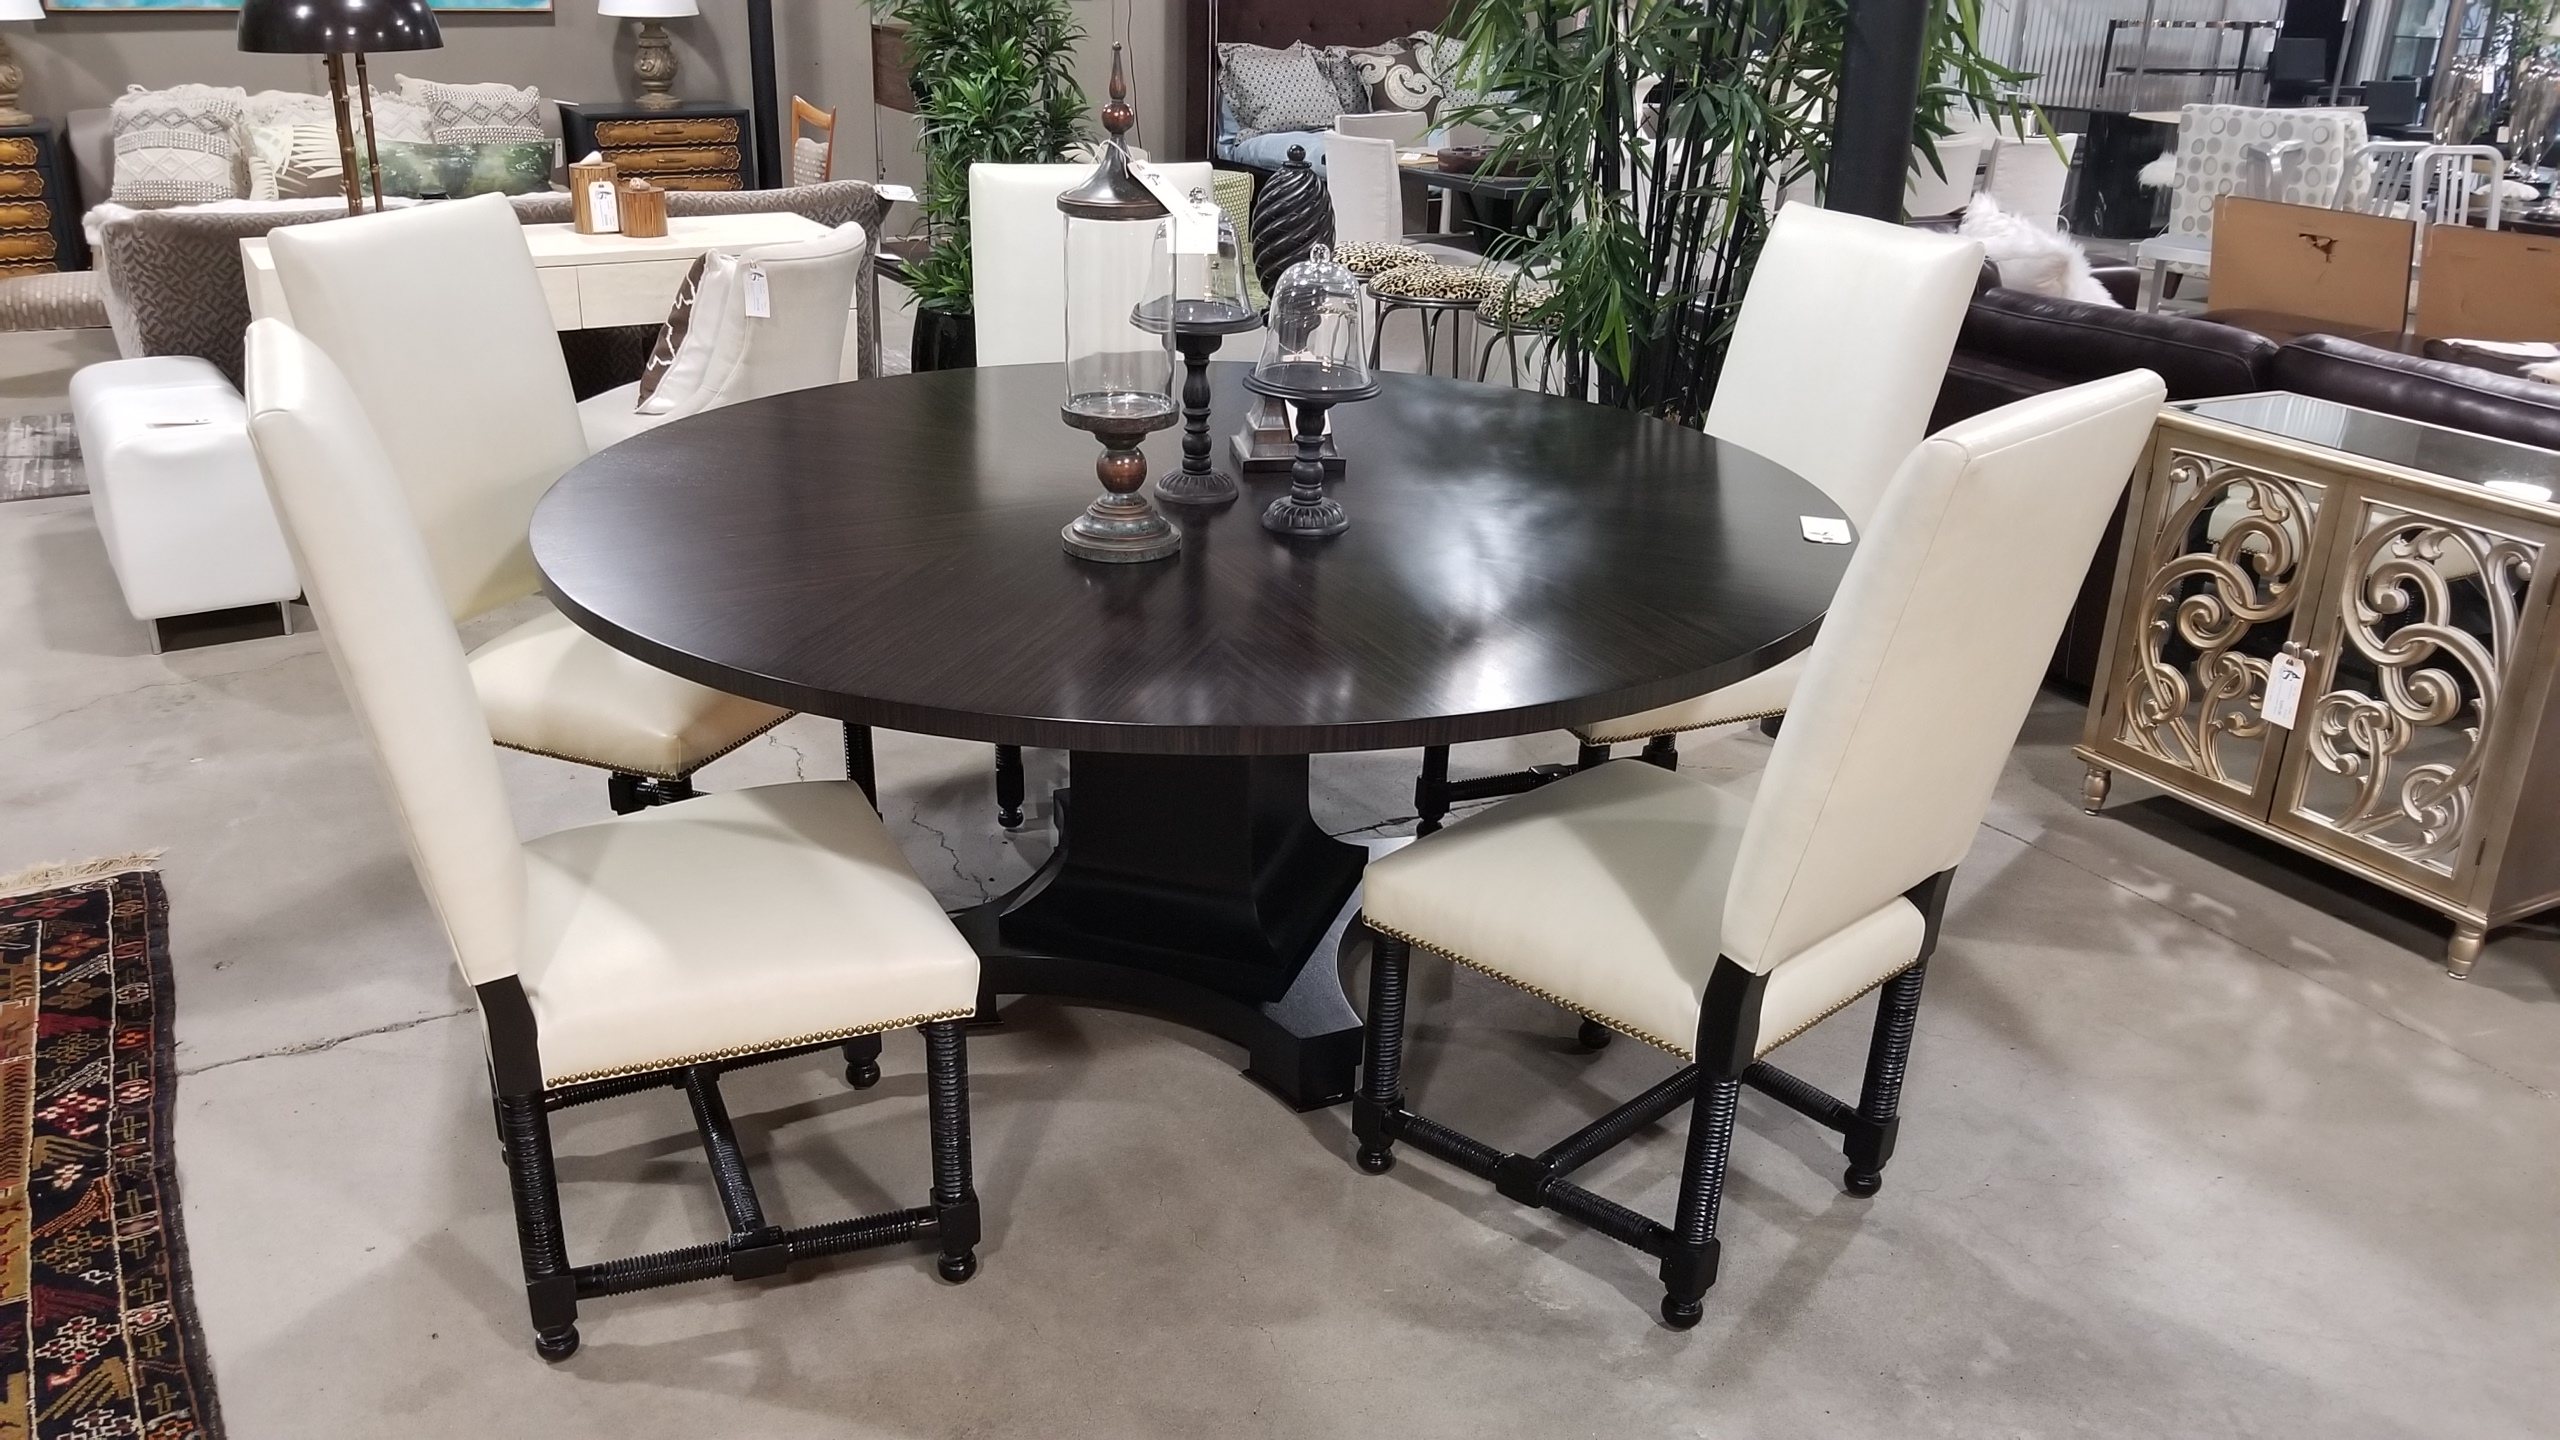 Mike Manion Custom Made Wood Dining Table U2013 Pedestal Base Measures 72u2033w X  30.5u2033h, Priced At $3000. Set Of Five Custom White Leather Side Chairs U2013  Wood ...